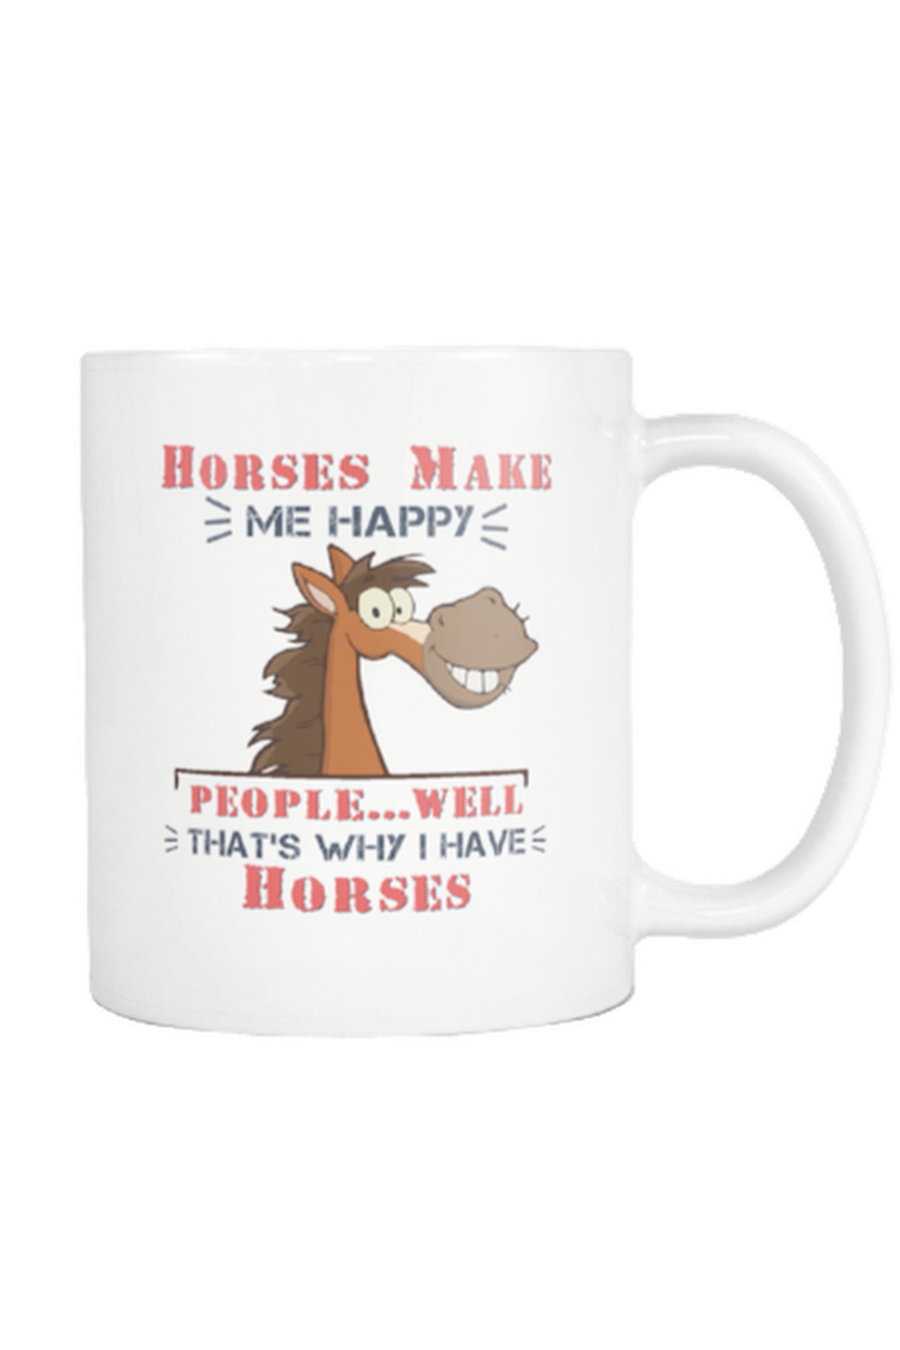 Horses Make Me Happy - Mug